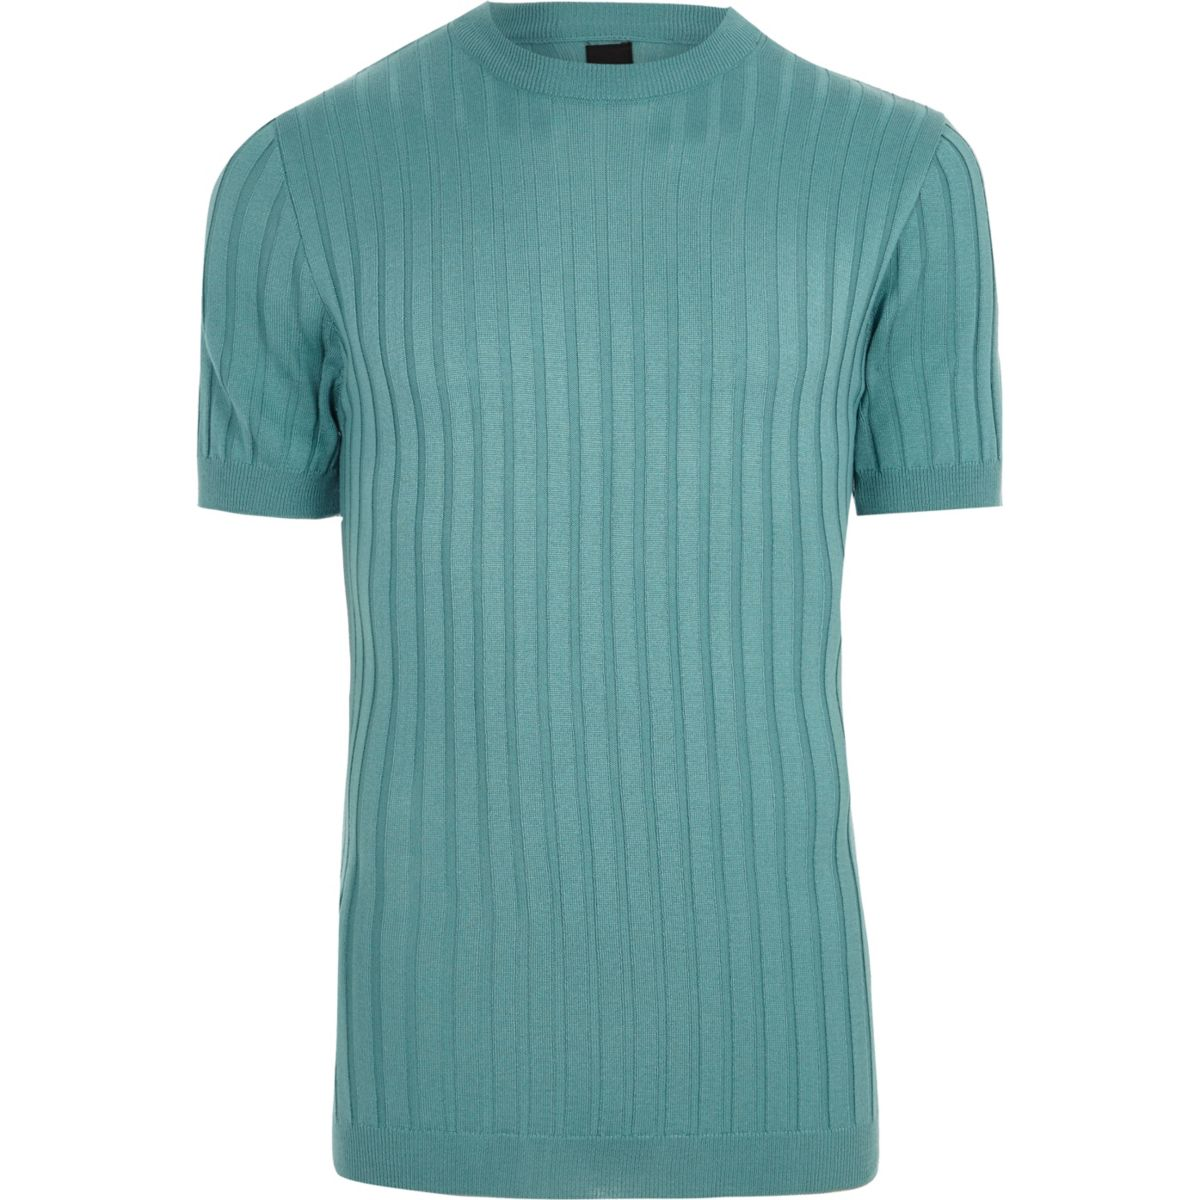 Teal green ribbed muscle fit T-shirt